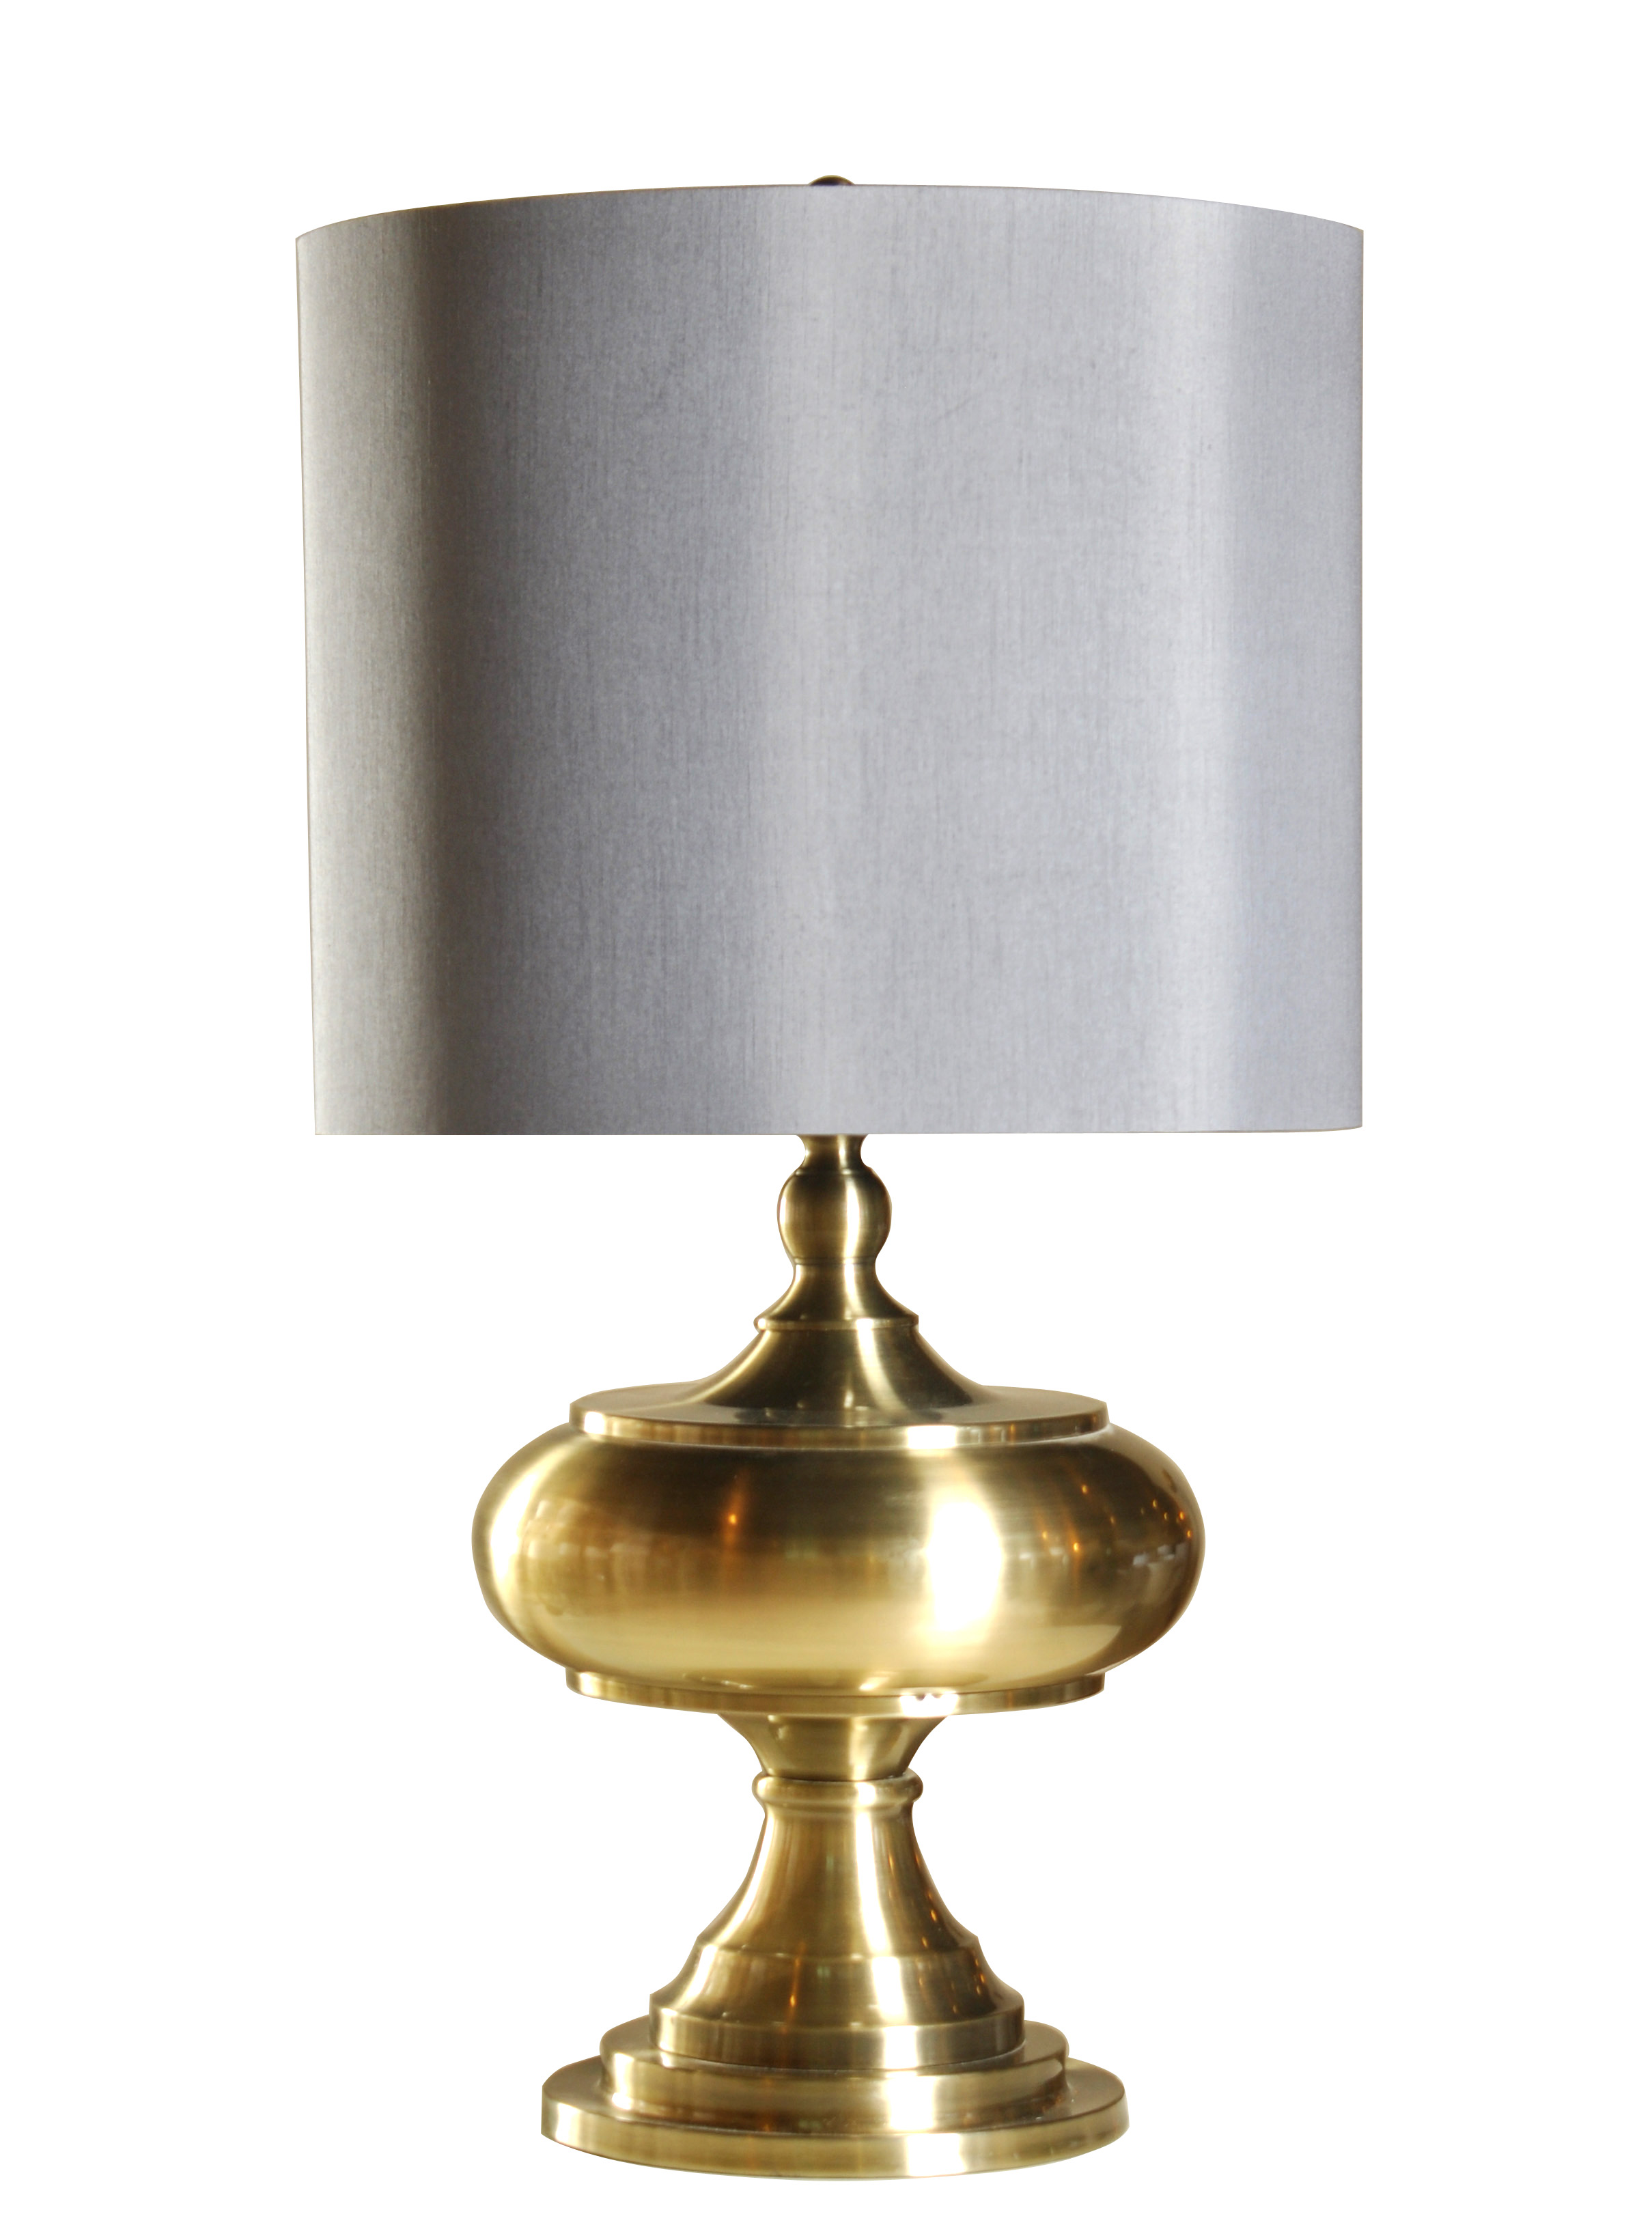 lamp with brass finish